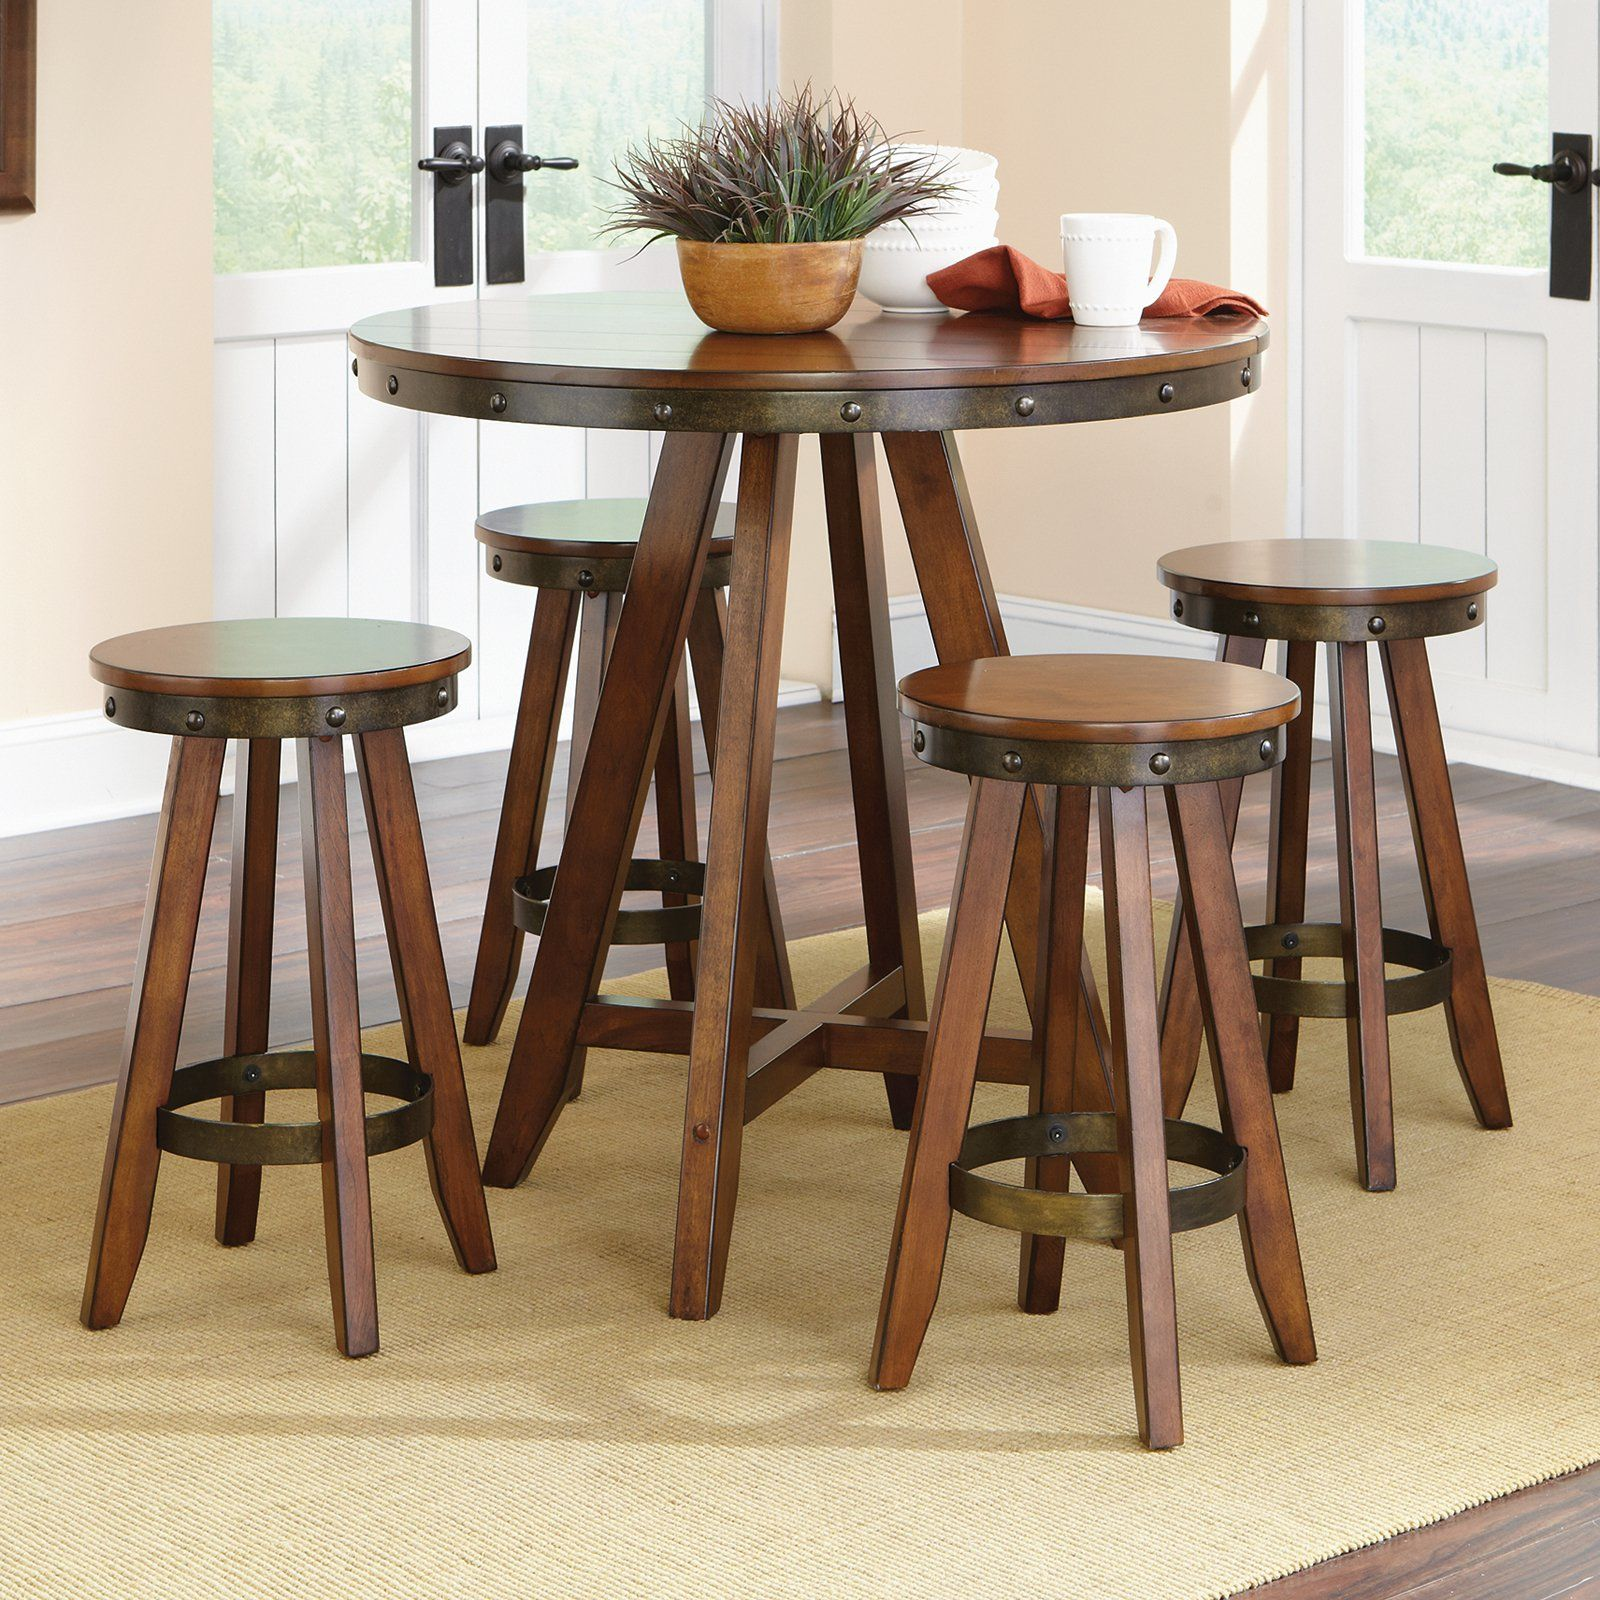 Sauder Carson Forge 5 Piece Counter Height Dining Table Set  From Best Counter Height Dining Room Decorating Design